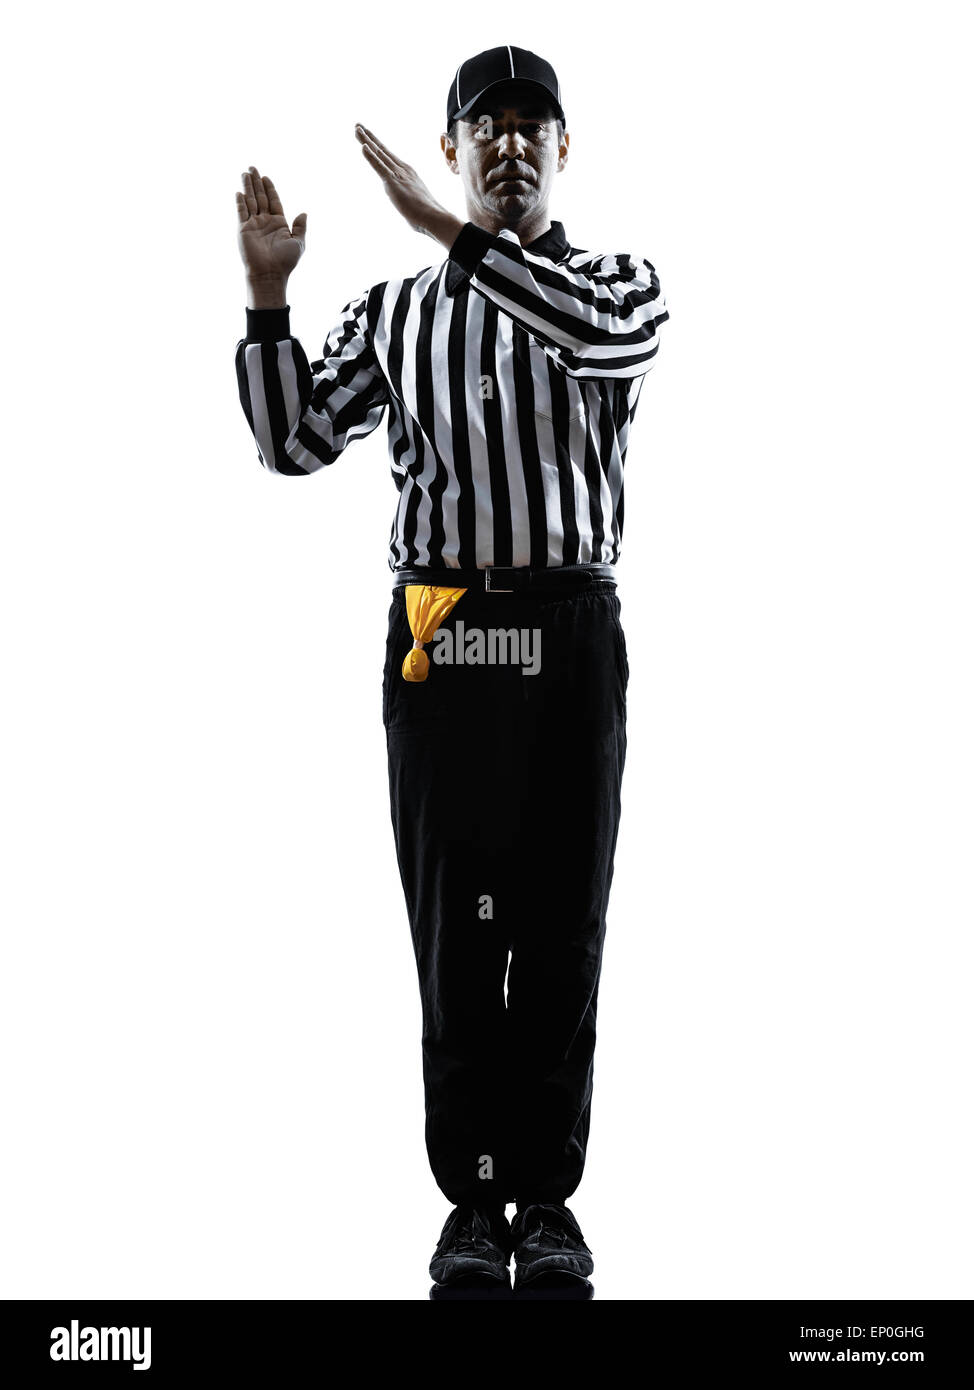 american football referee gestures intentional grounding in silhouette on white background - Stock Image